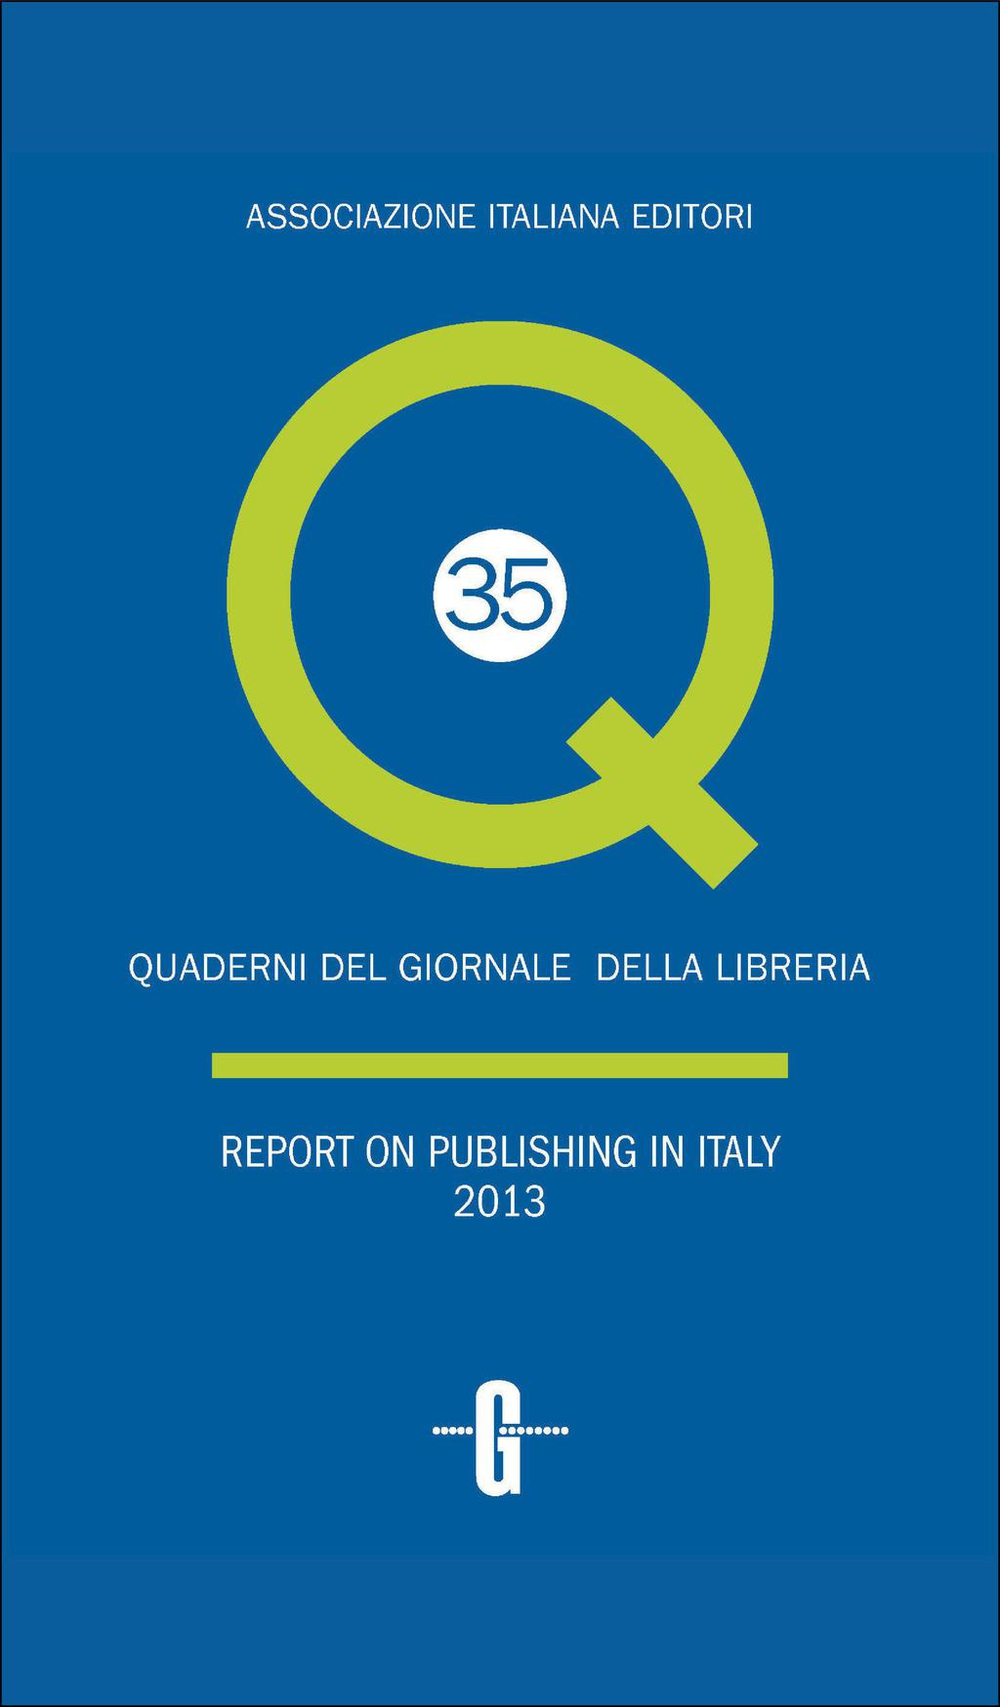 Report on publishing in Italy 2013